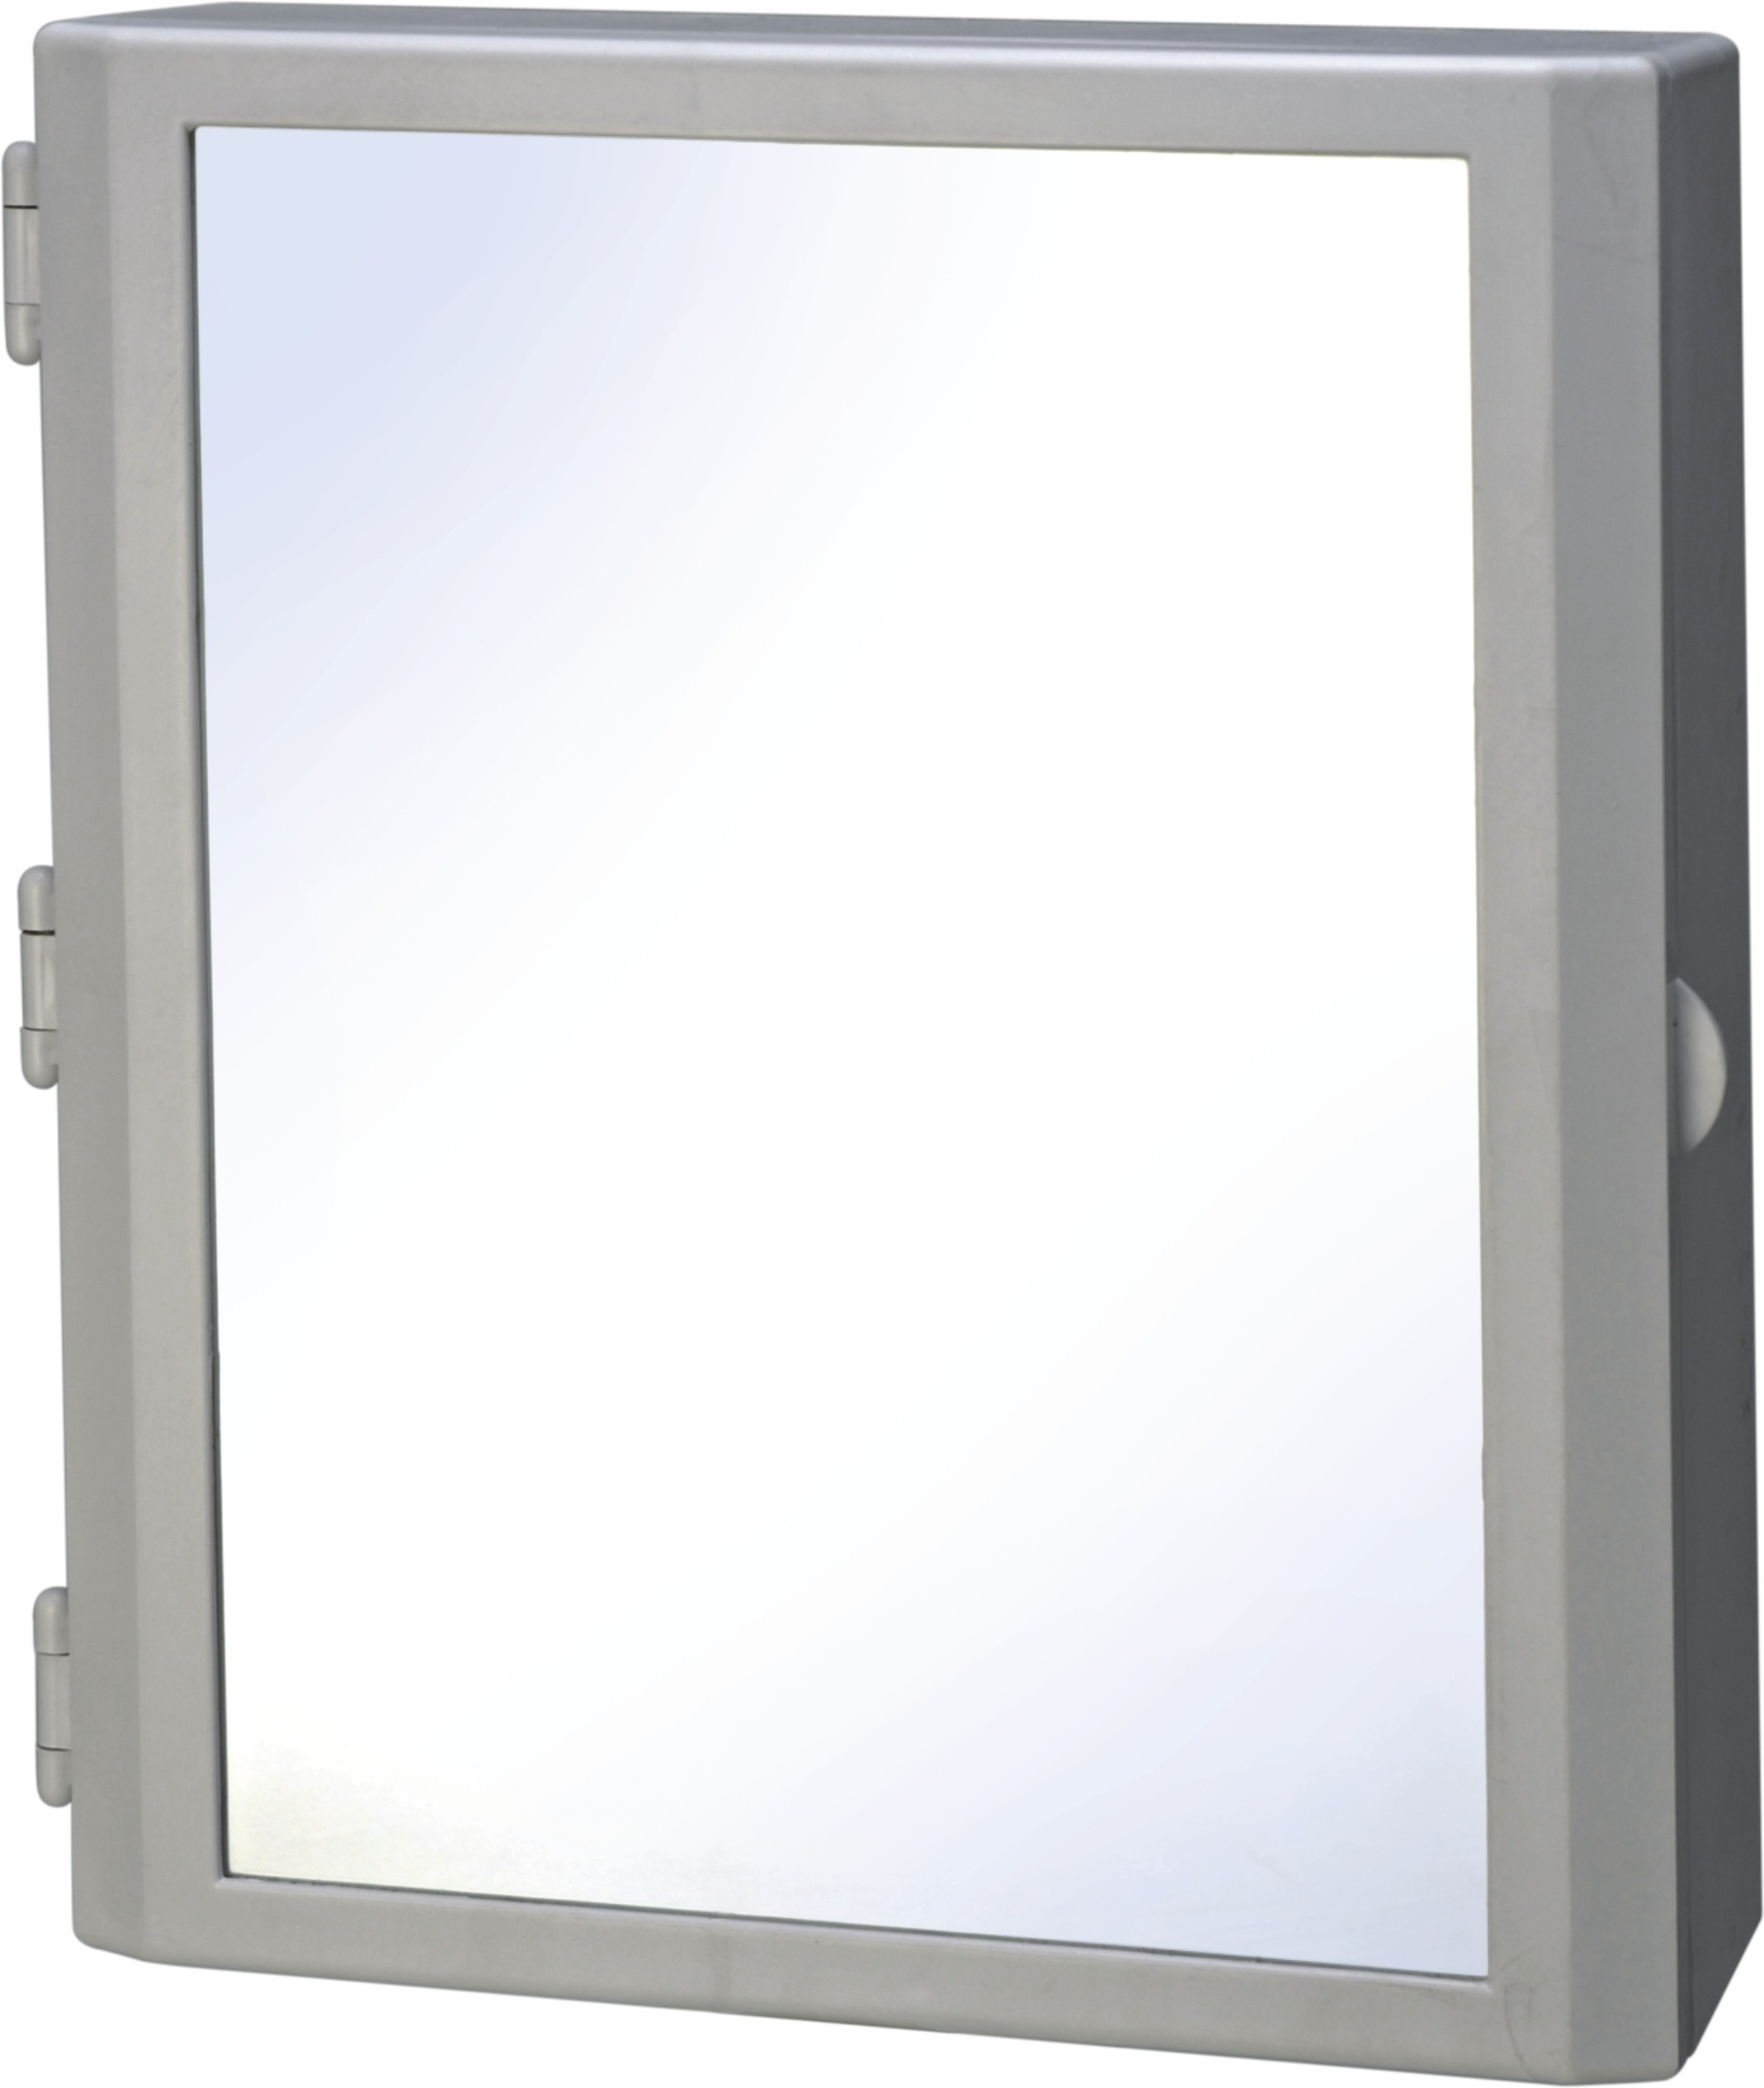 plast flora bathroom mirror cabinet plastic wall shelf price in india